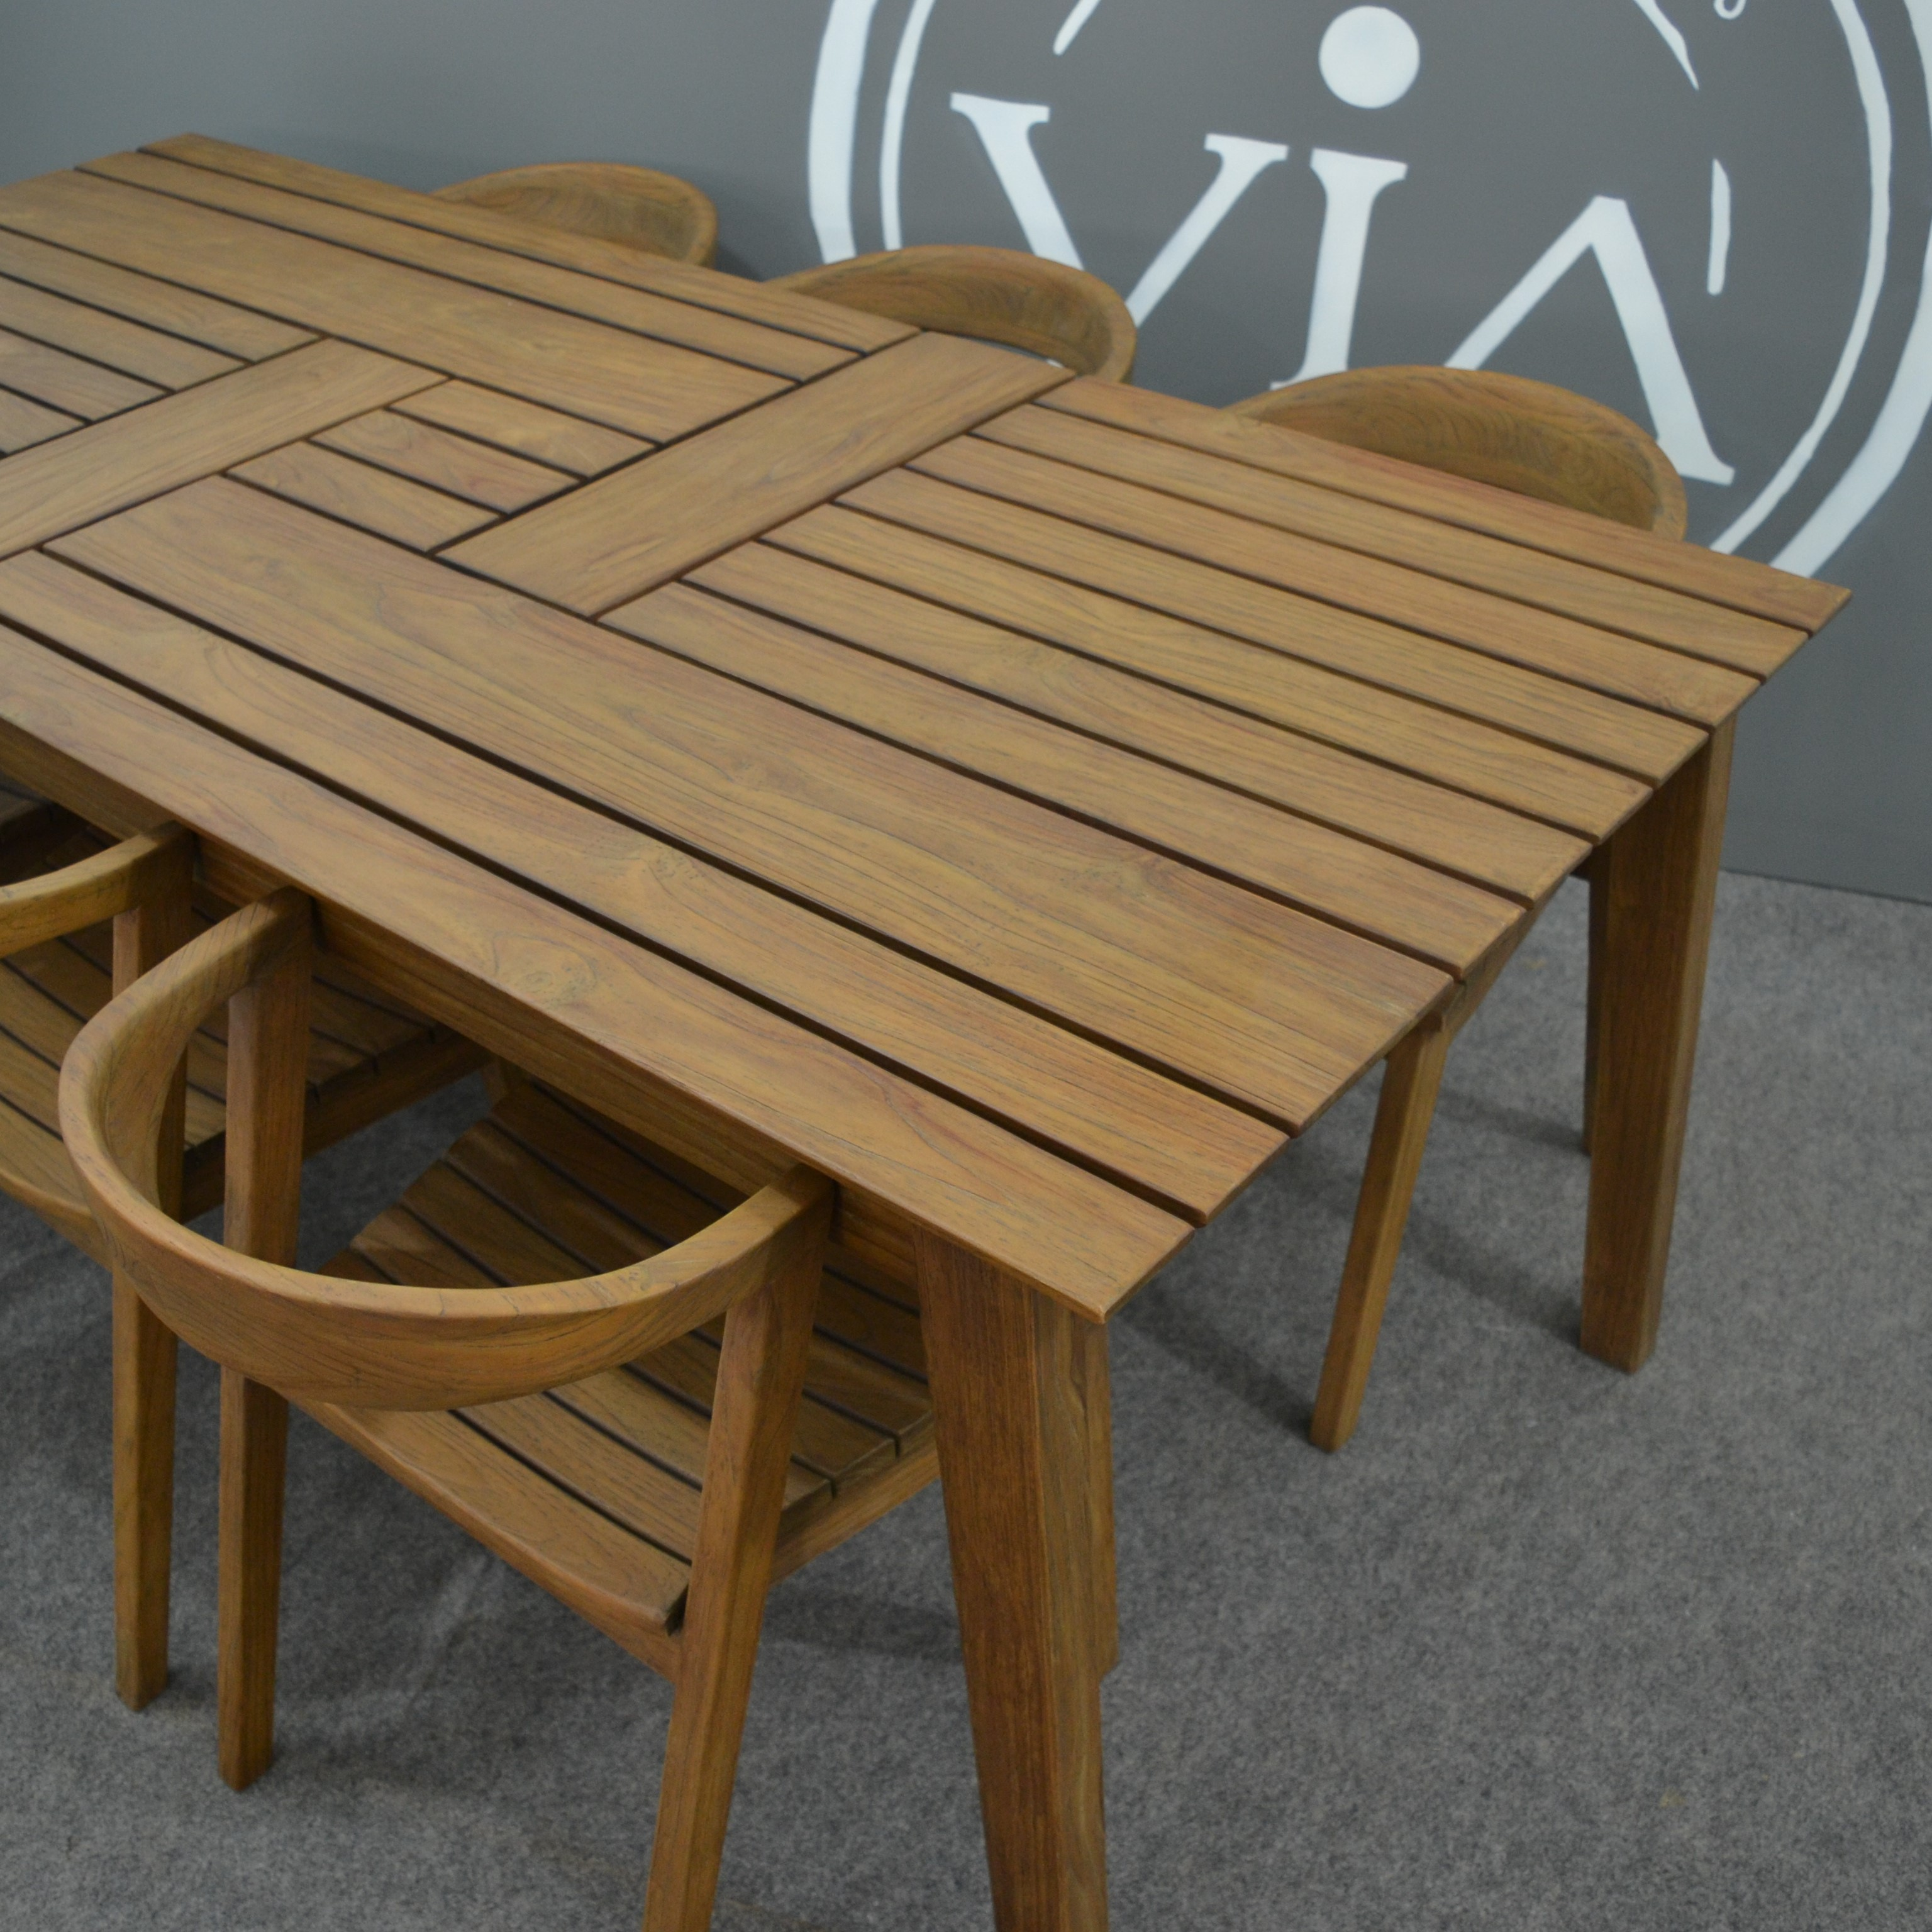 Furniture Importers: Manufacturers And Importers Of